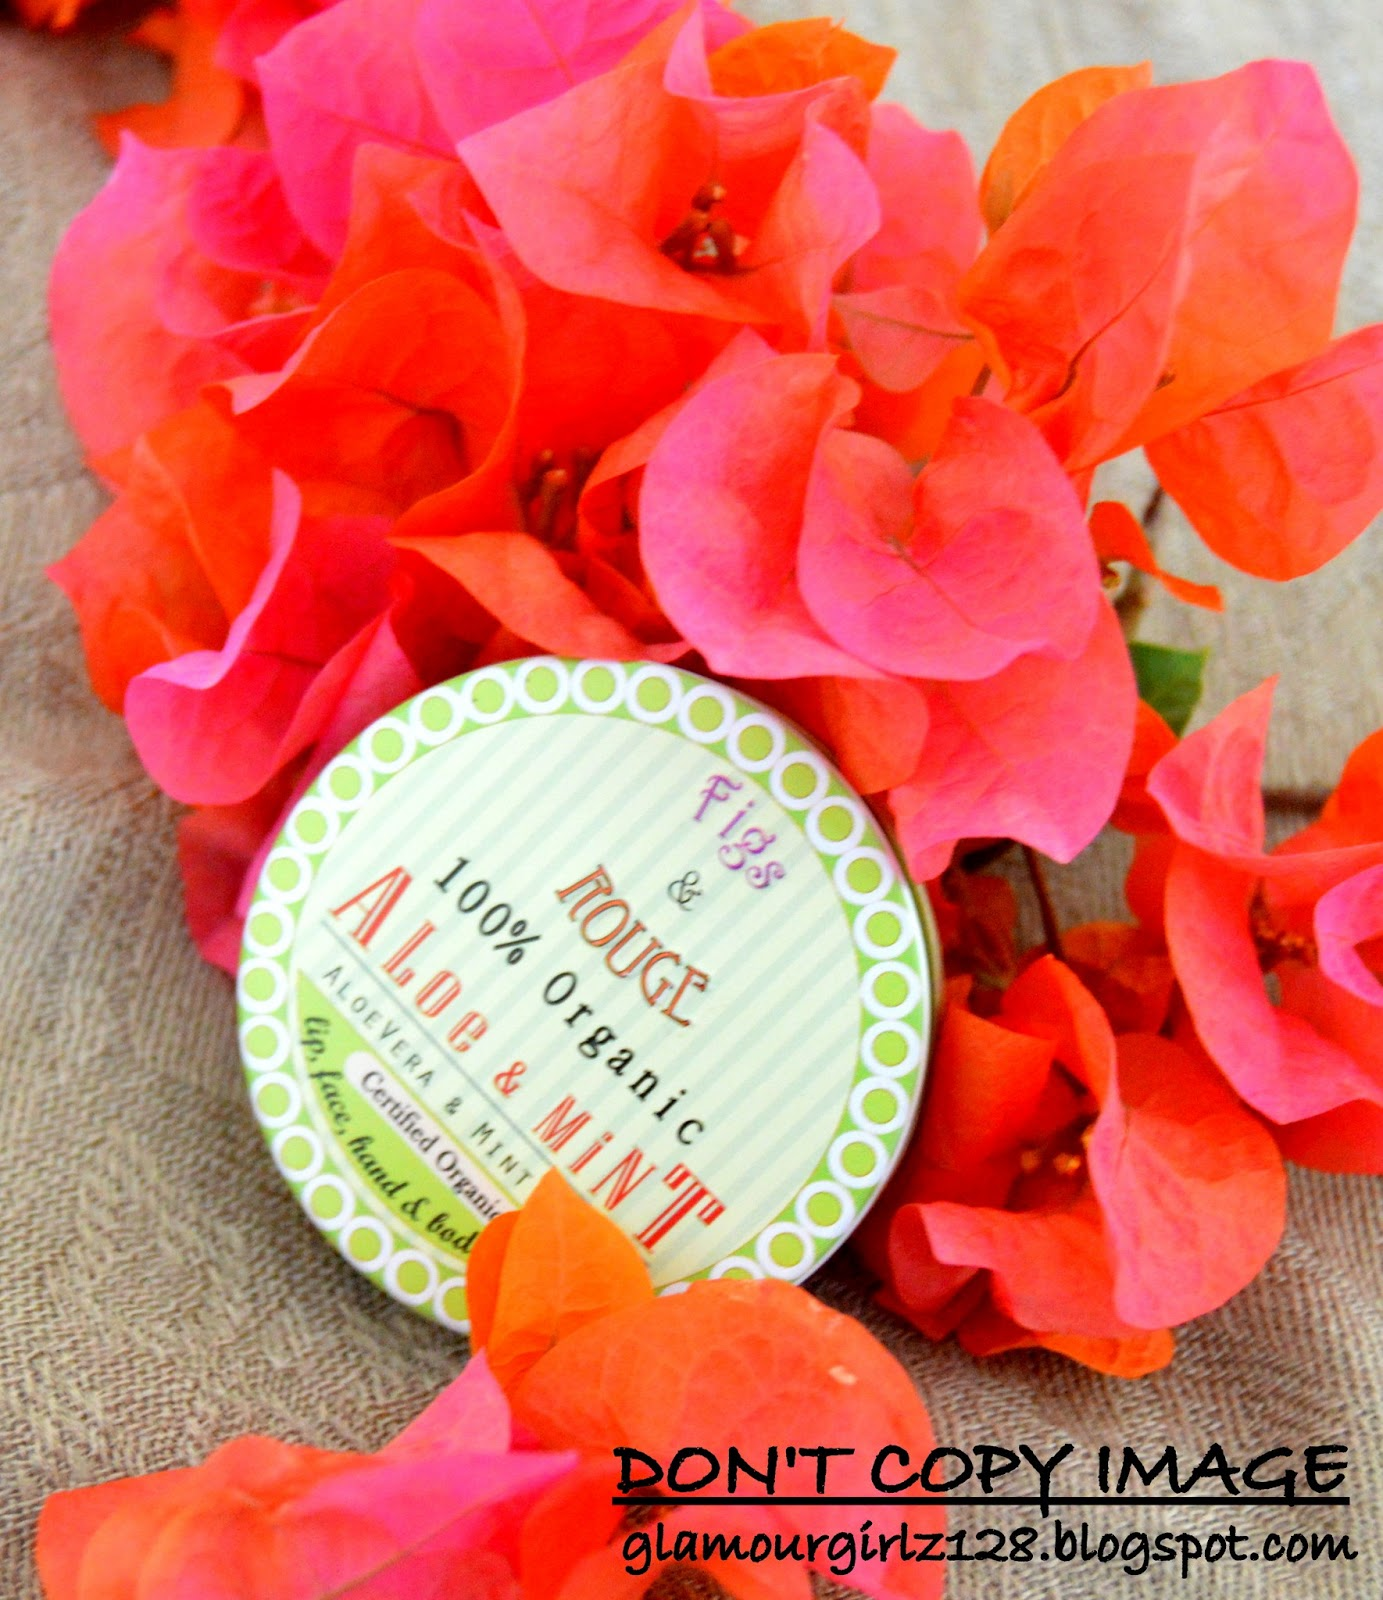 Beauty balm by Figs and Rouge.